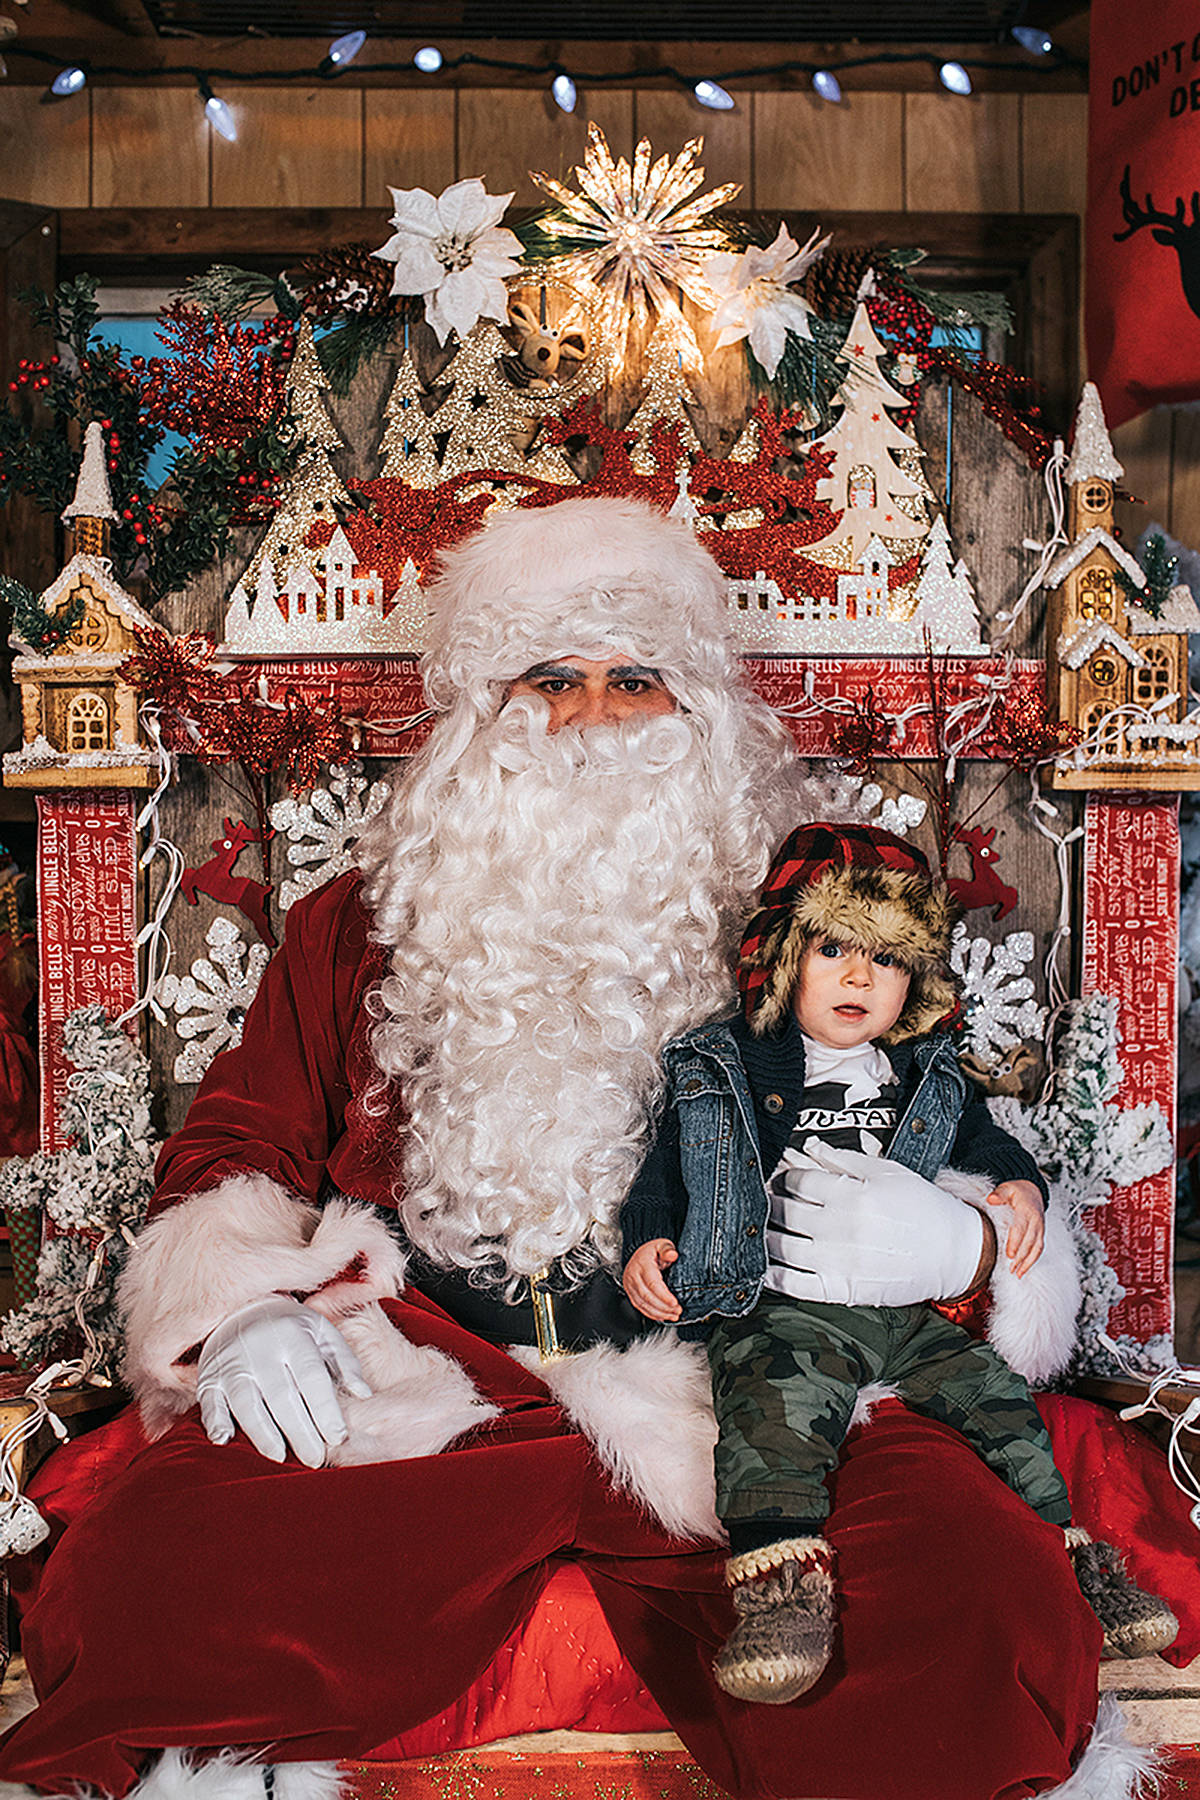 A rustic shed was set up for Santa at Potters Nursery, where people could bring their family or pets and have pictures taken with the jolly ol' elf. All proceeds to the Canuck Place children's hospice in Abbotsford. (Angela Ruscheinski/Blush Photography)